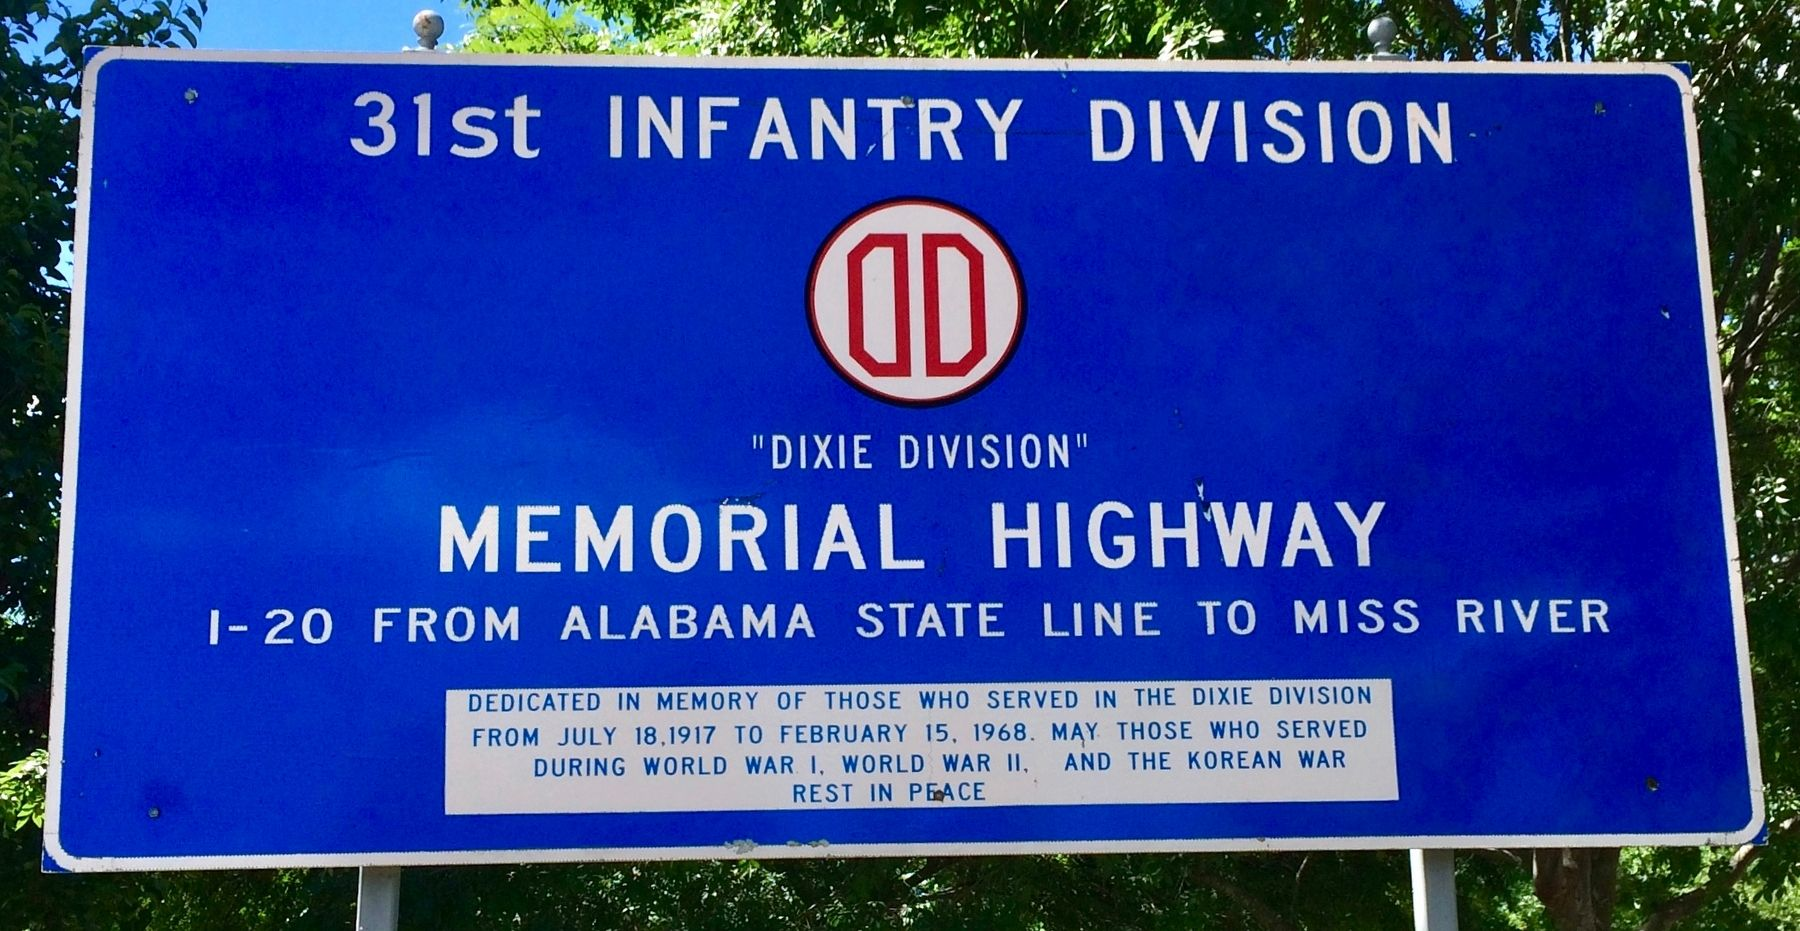 31st Infantry Division Memorial Highway Marker image. Click for full size.